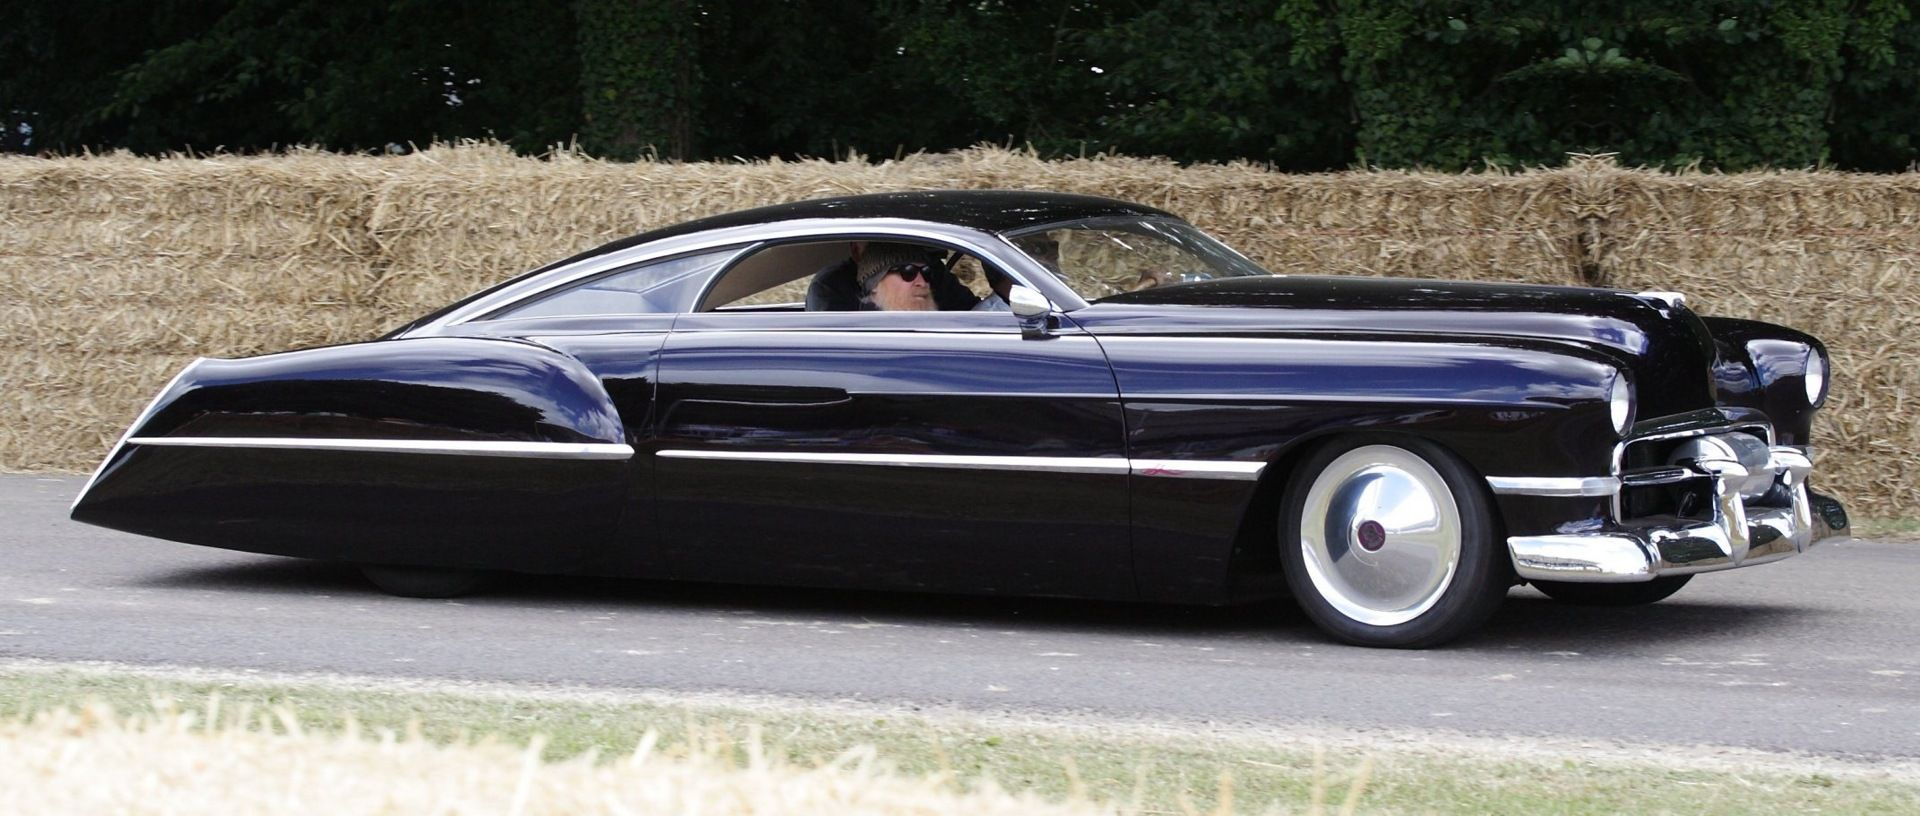 The base car is a 1948 Cadillac Series 62 Sedanette, customized for